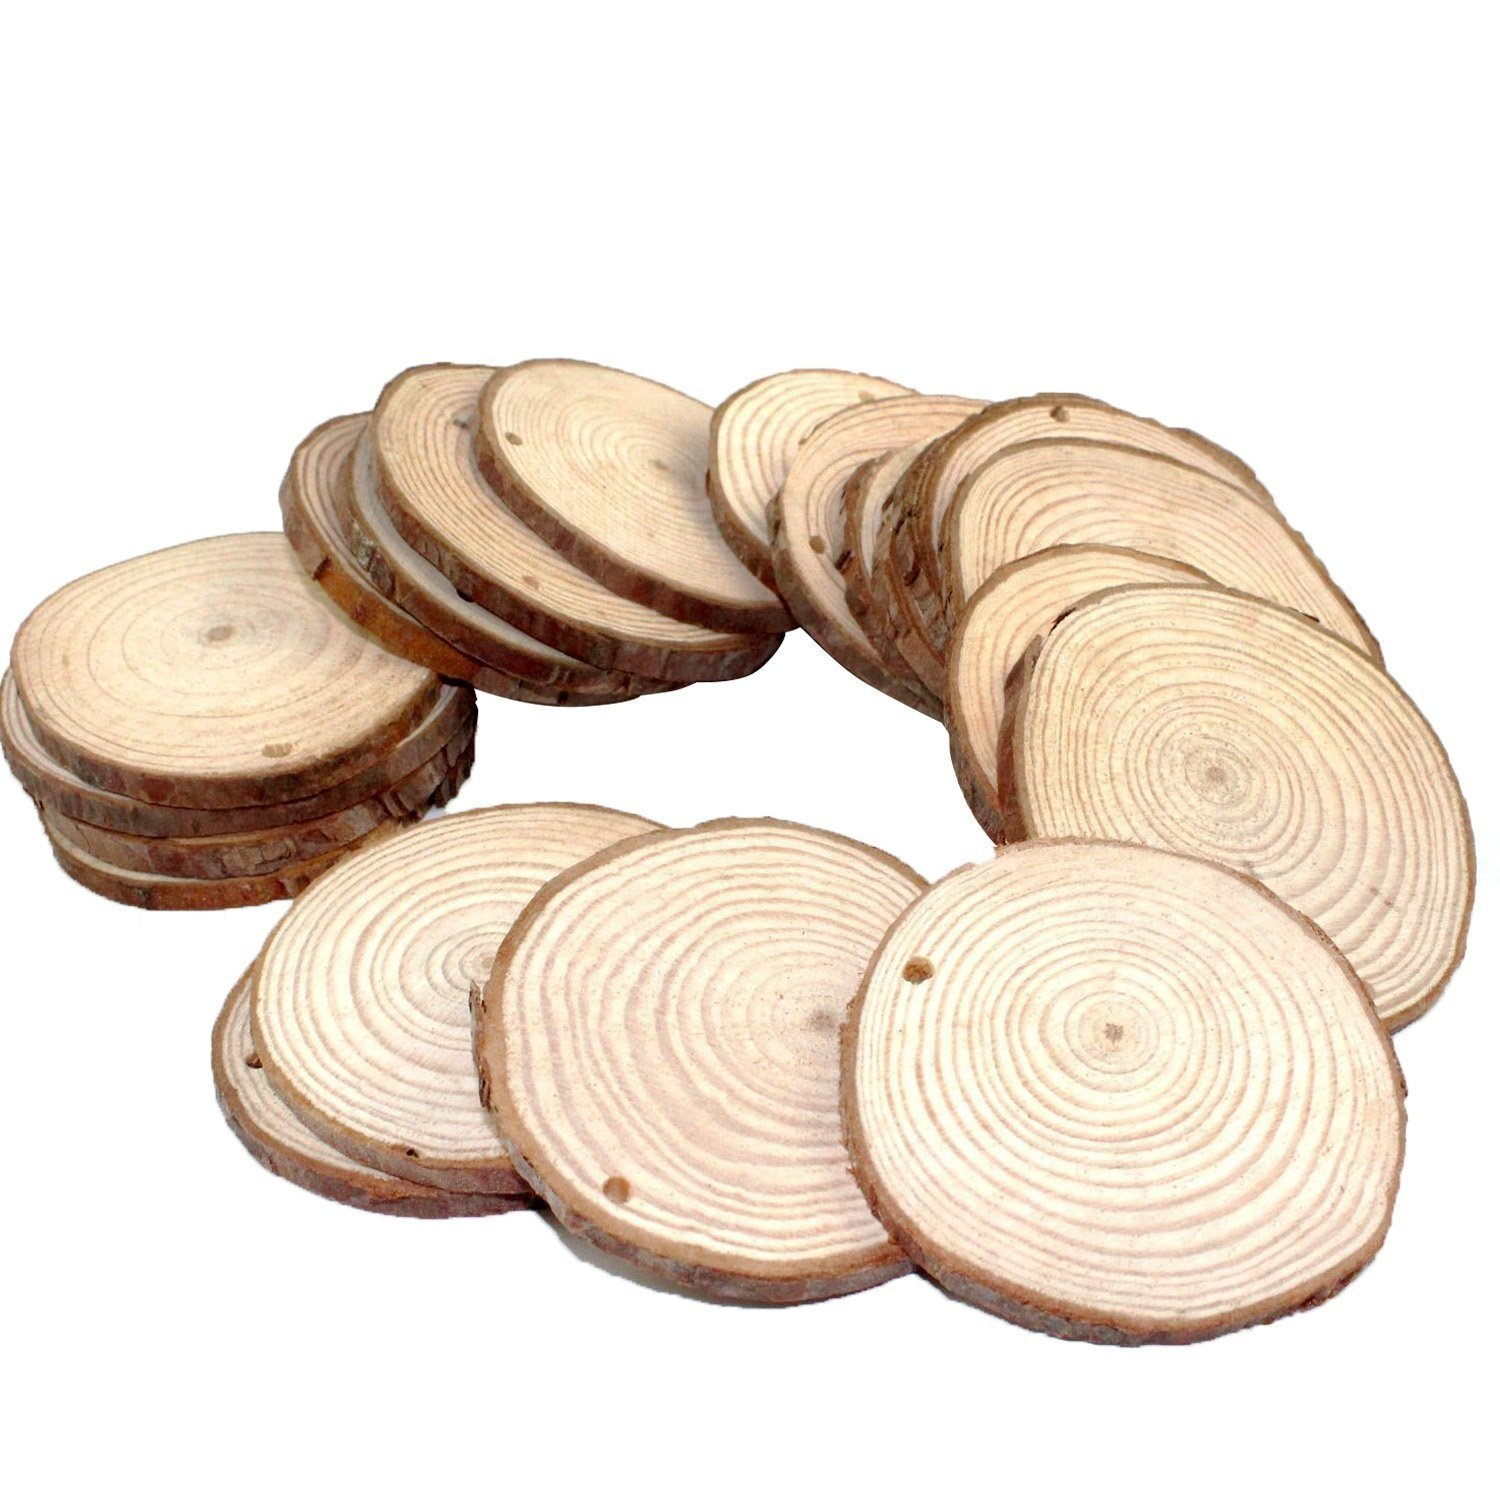 Fuhaieec Wood Slices 2.4-2.8 (6-7cm) Natural Wood Slices Unfinished Predrilled Round Discs Tree Bark Wooden Circles for DIY Crafts Christmas Rustic Wedding Ornaments (50)